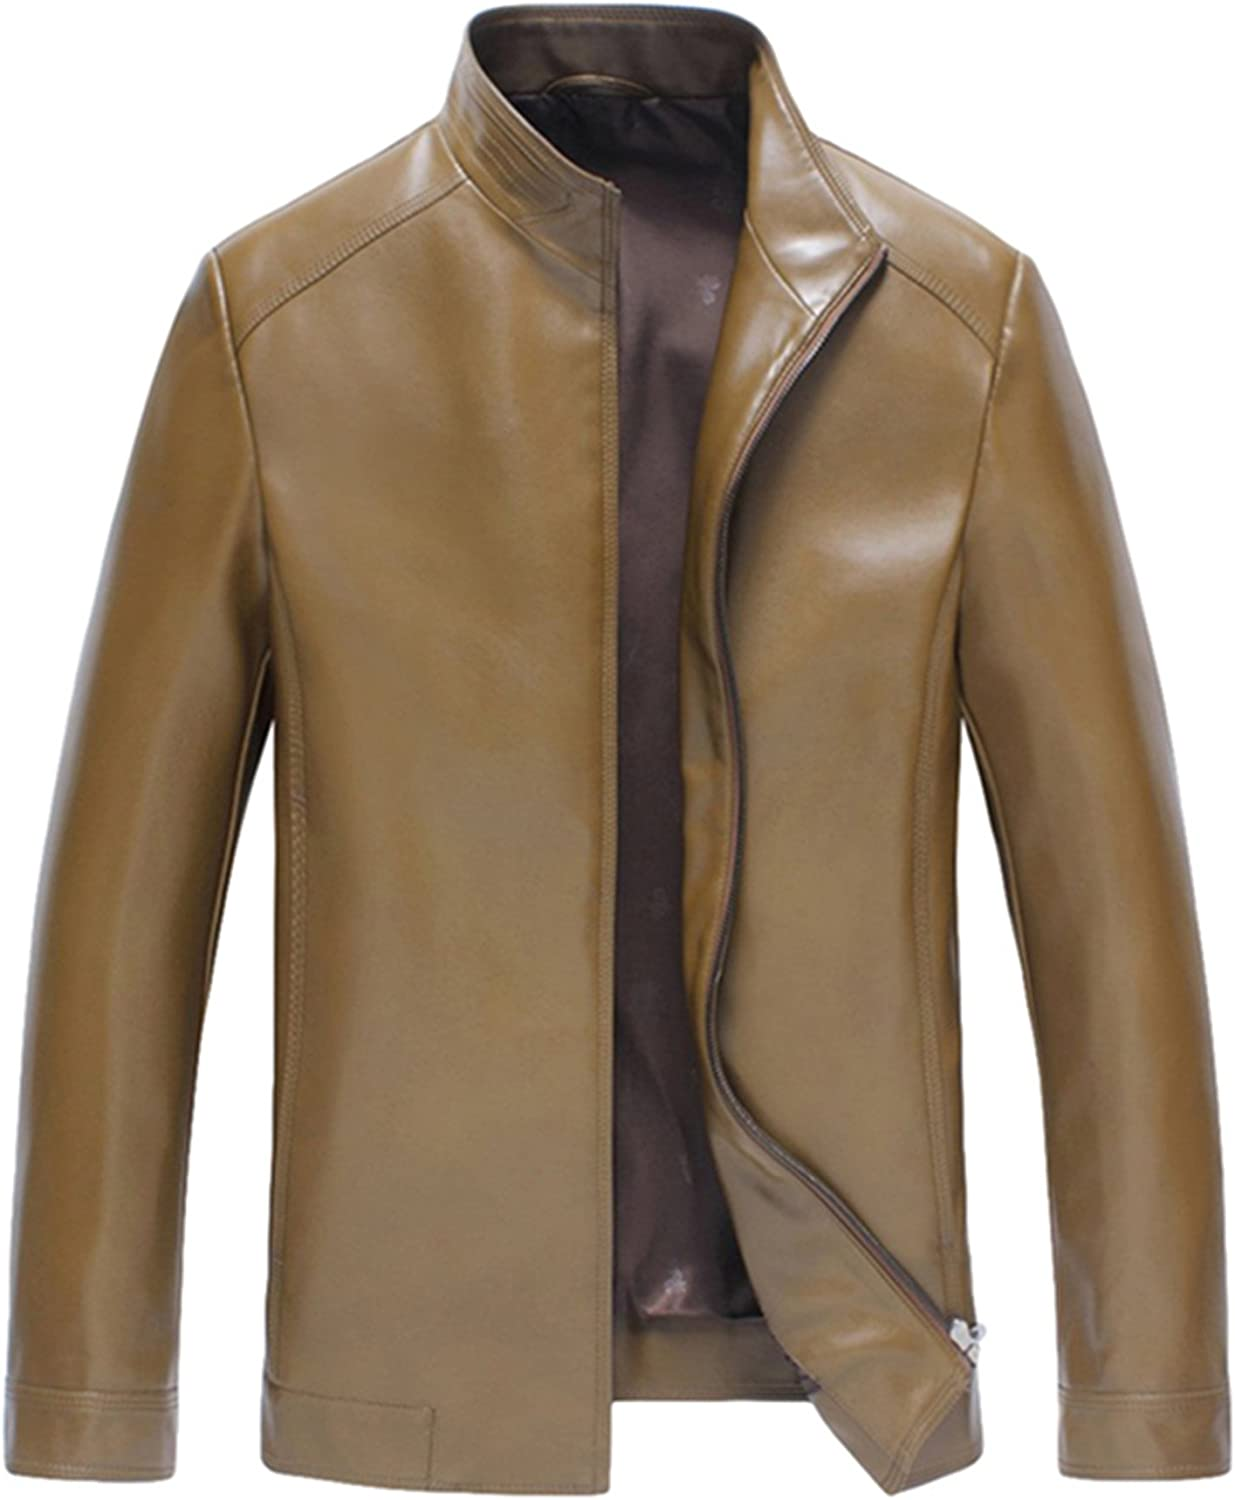 Men's leather business leather Leisure leather jacket